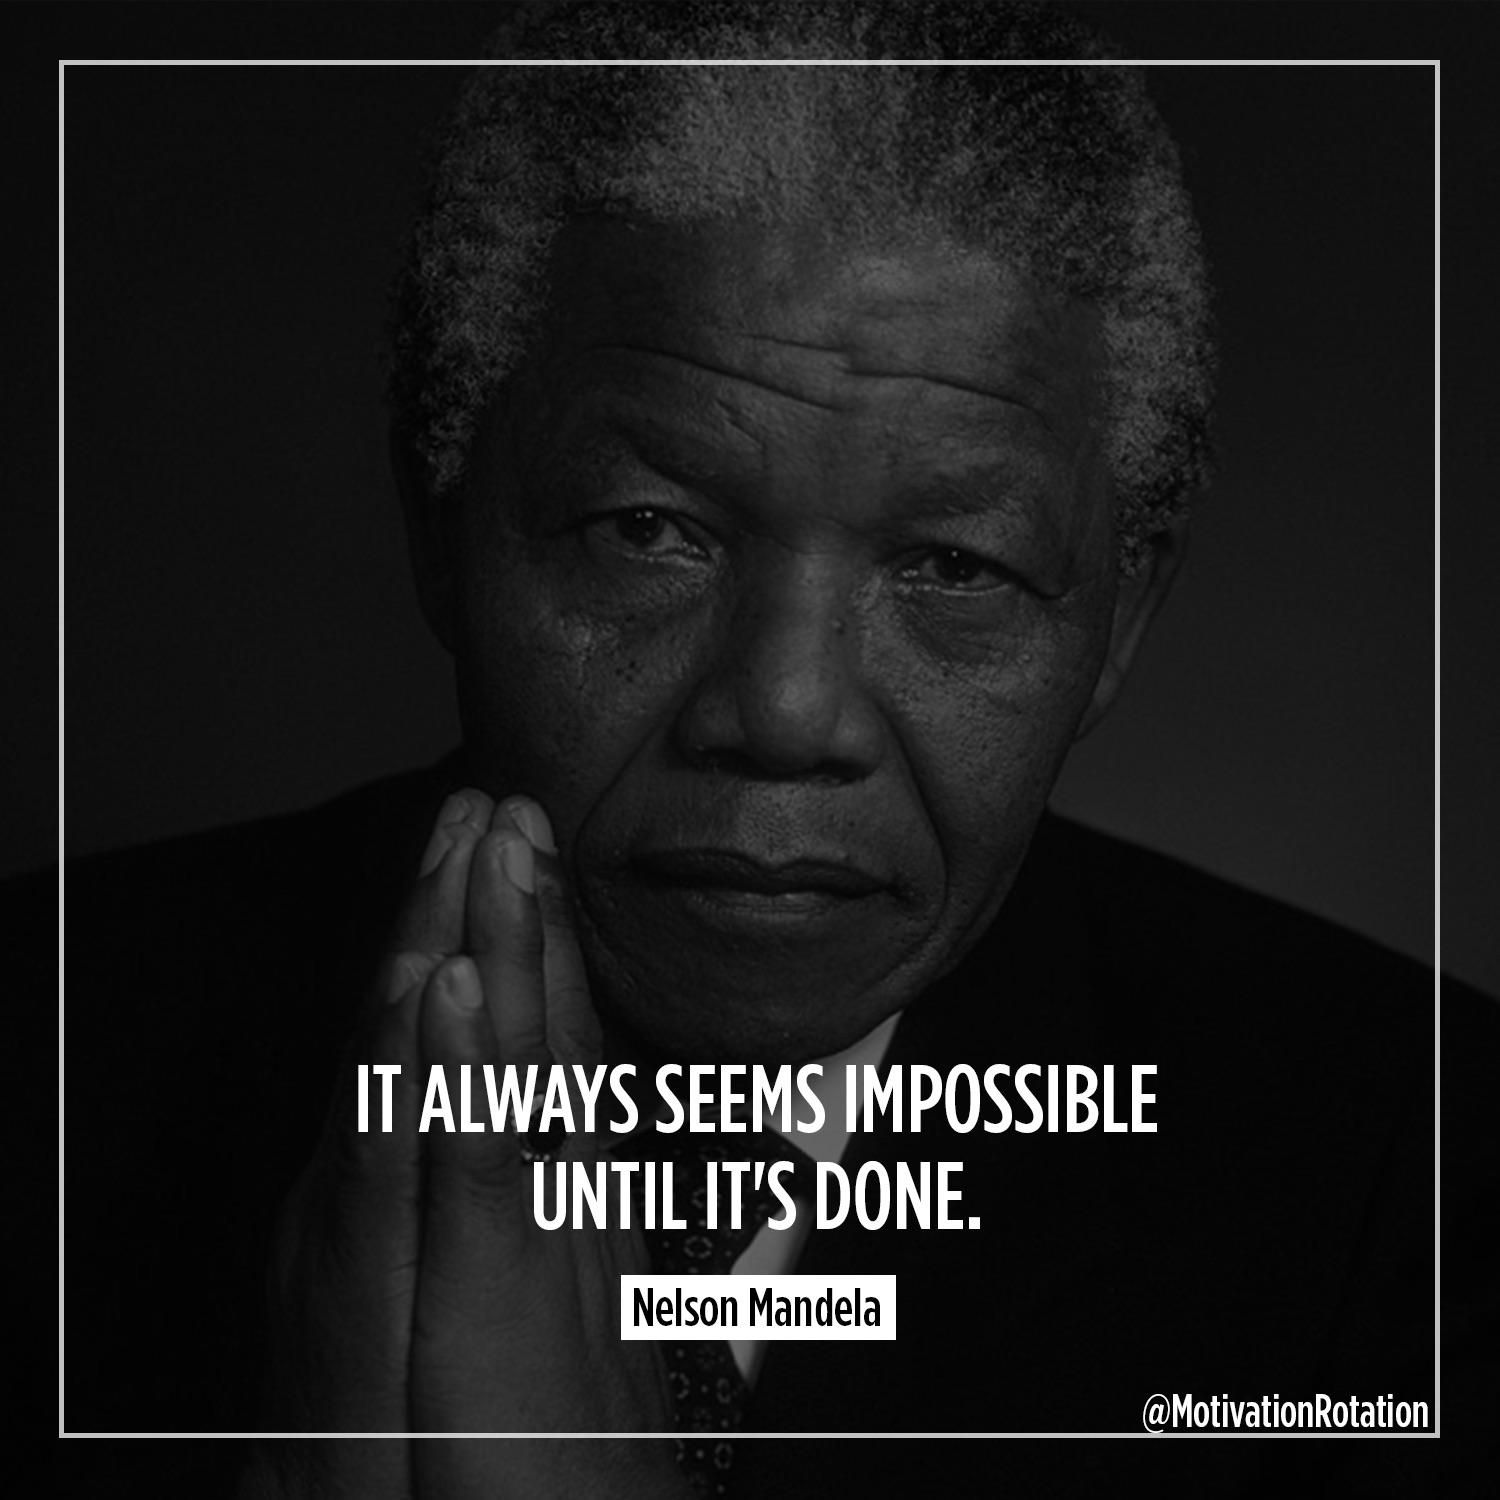 [Image] If anyone would know, it would be Mr. Mandela.